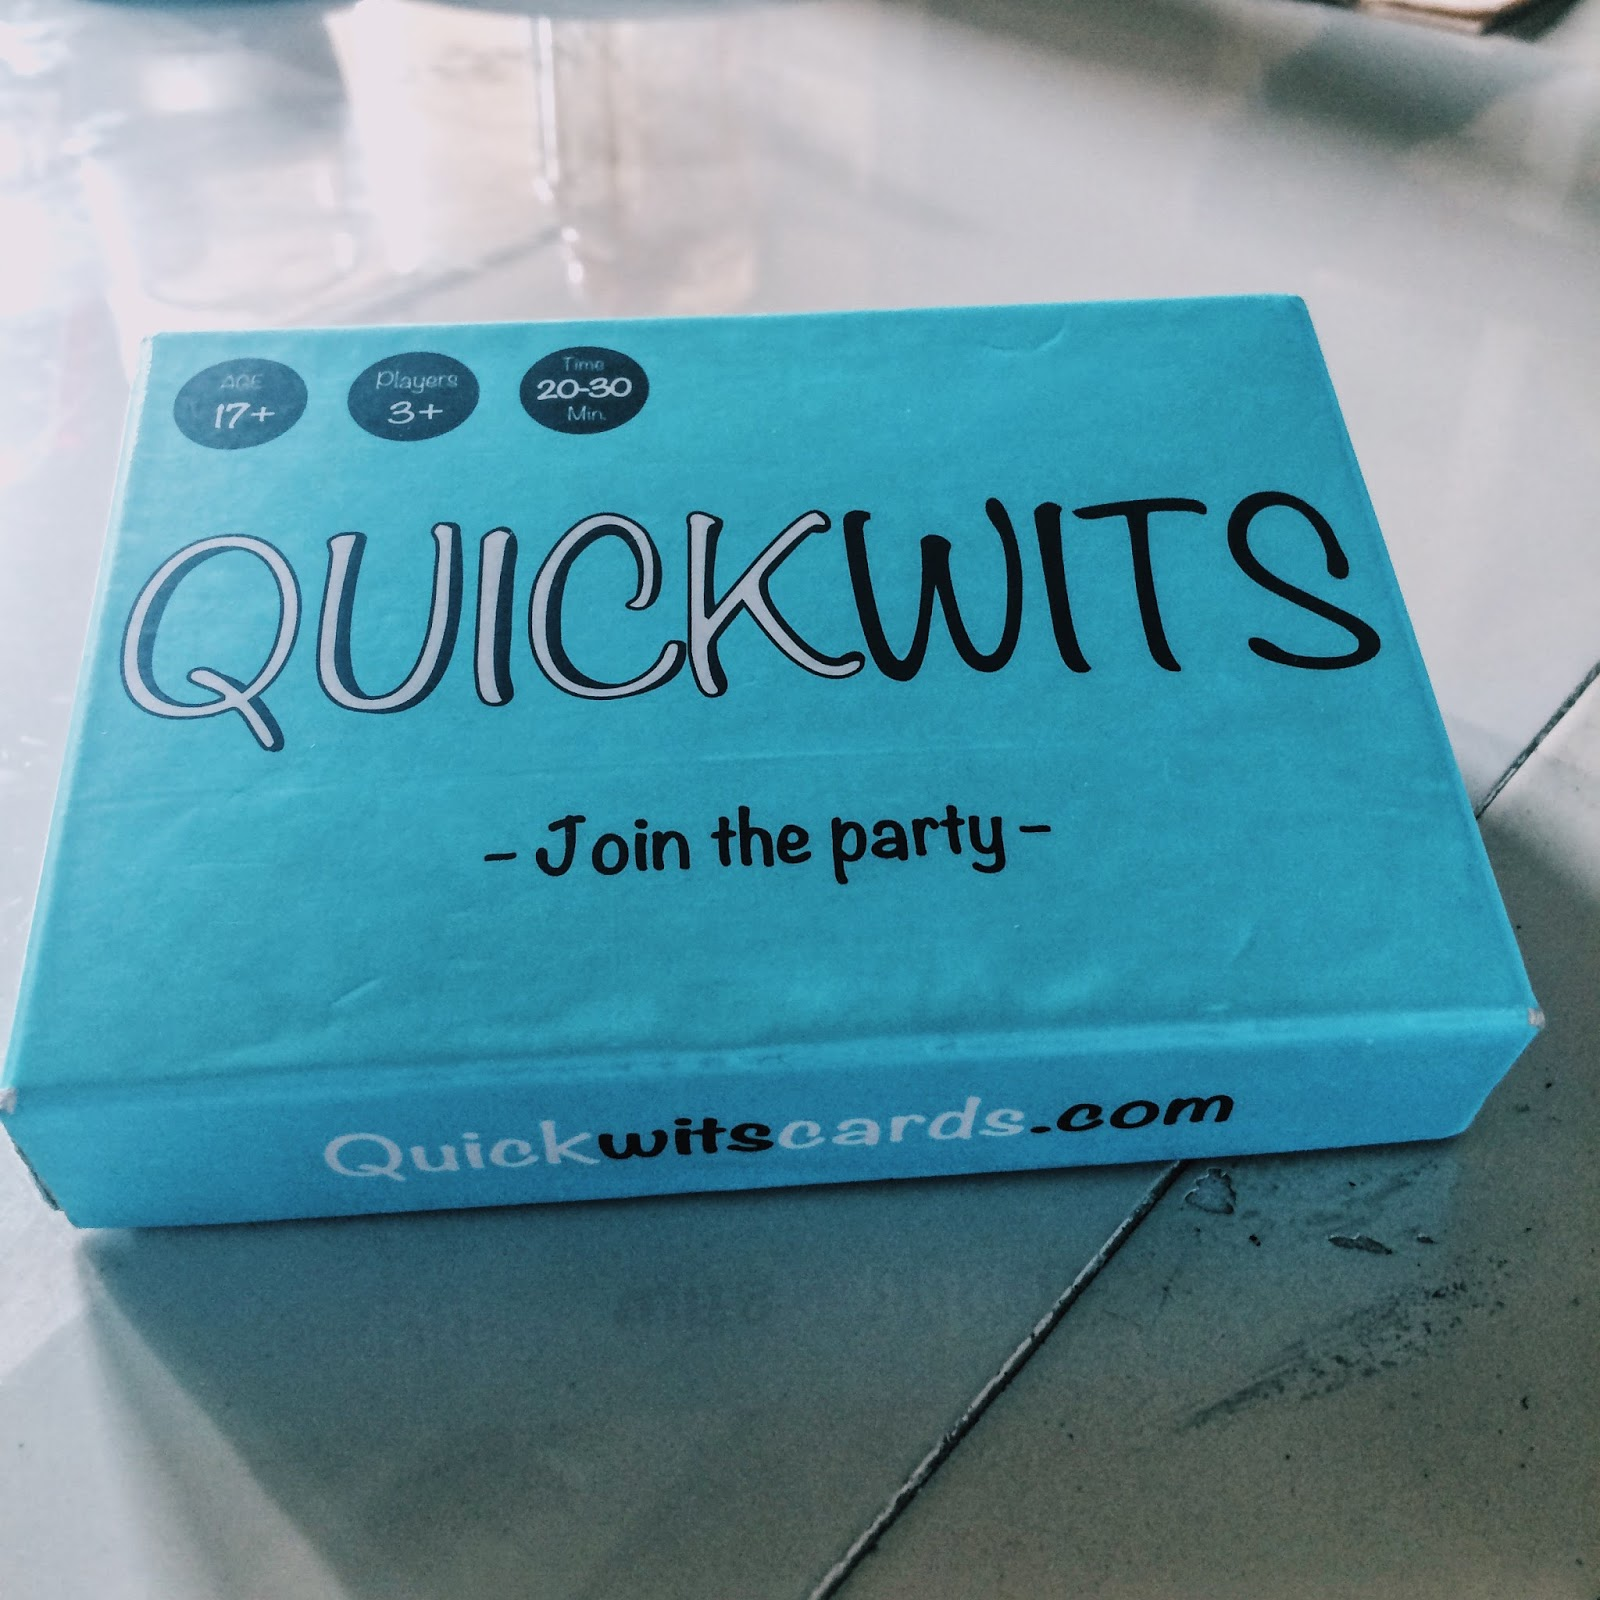 http www.quickwitscards.com instructions